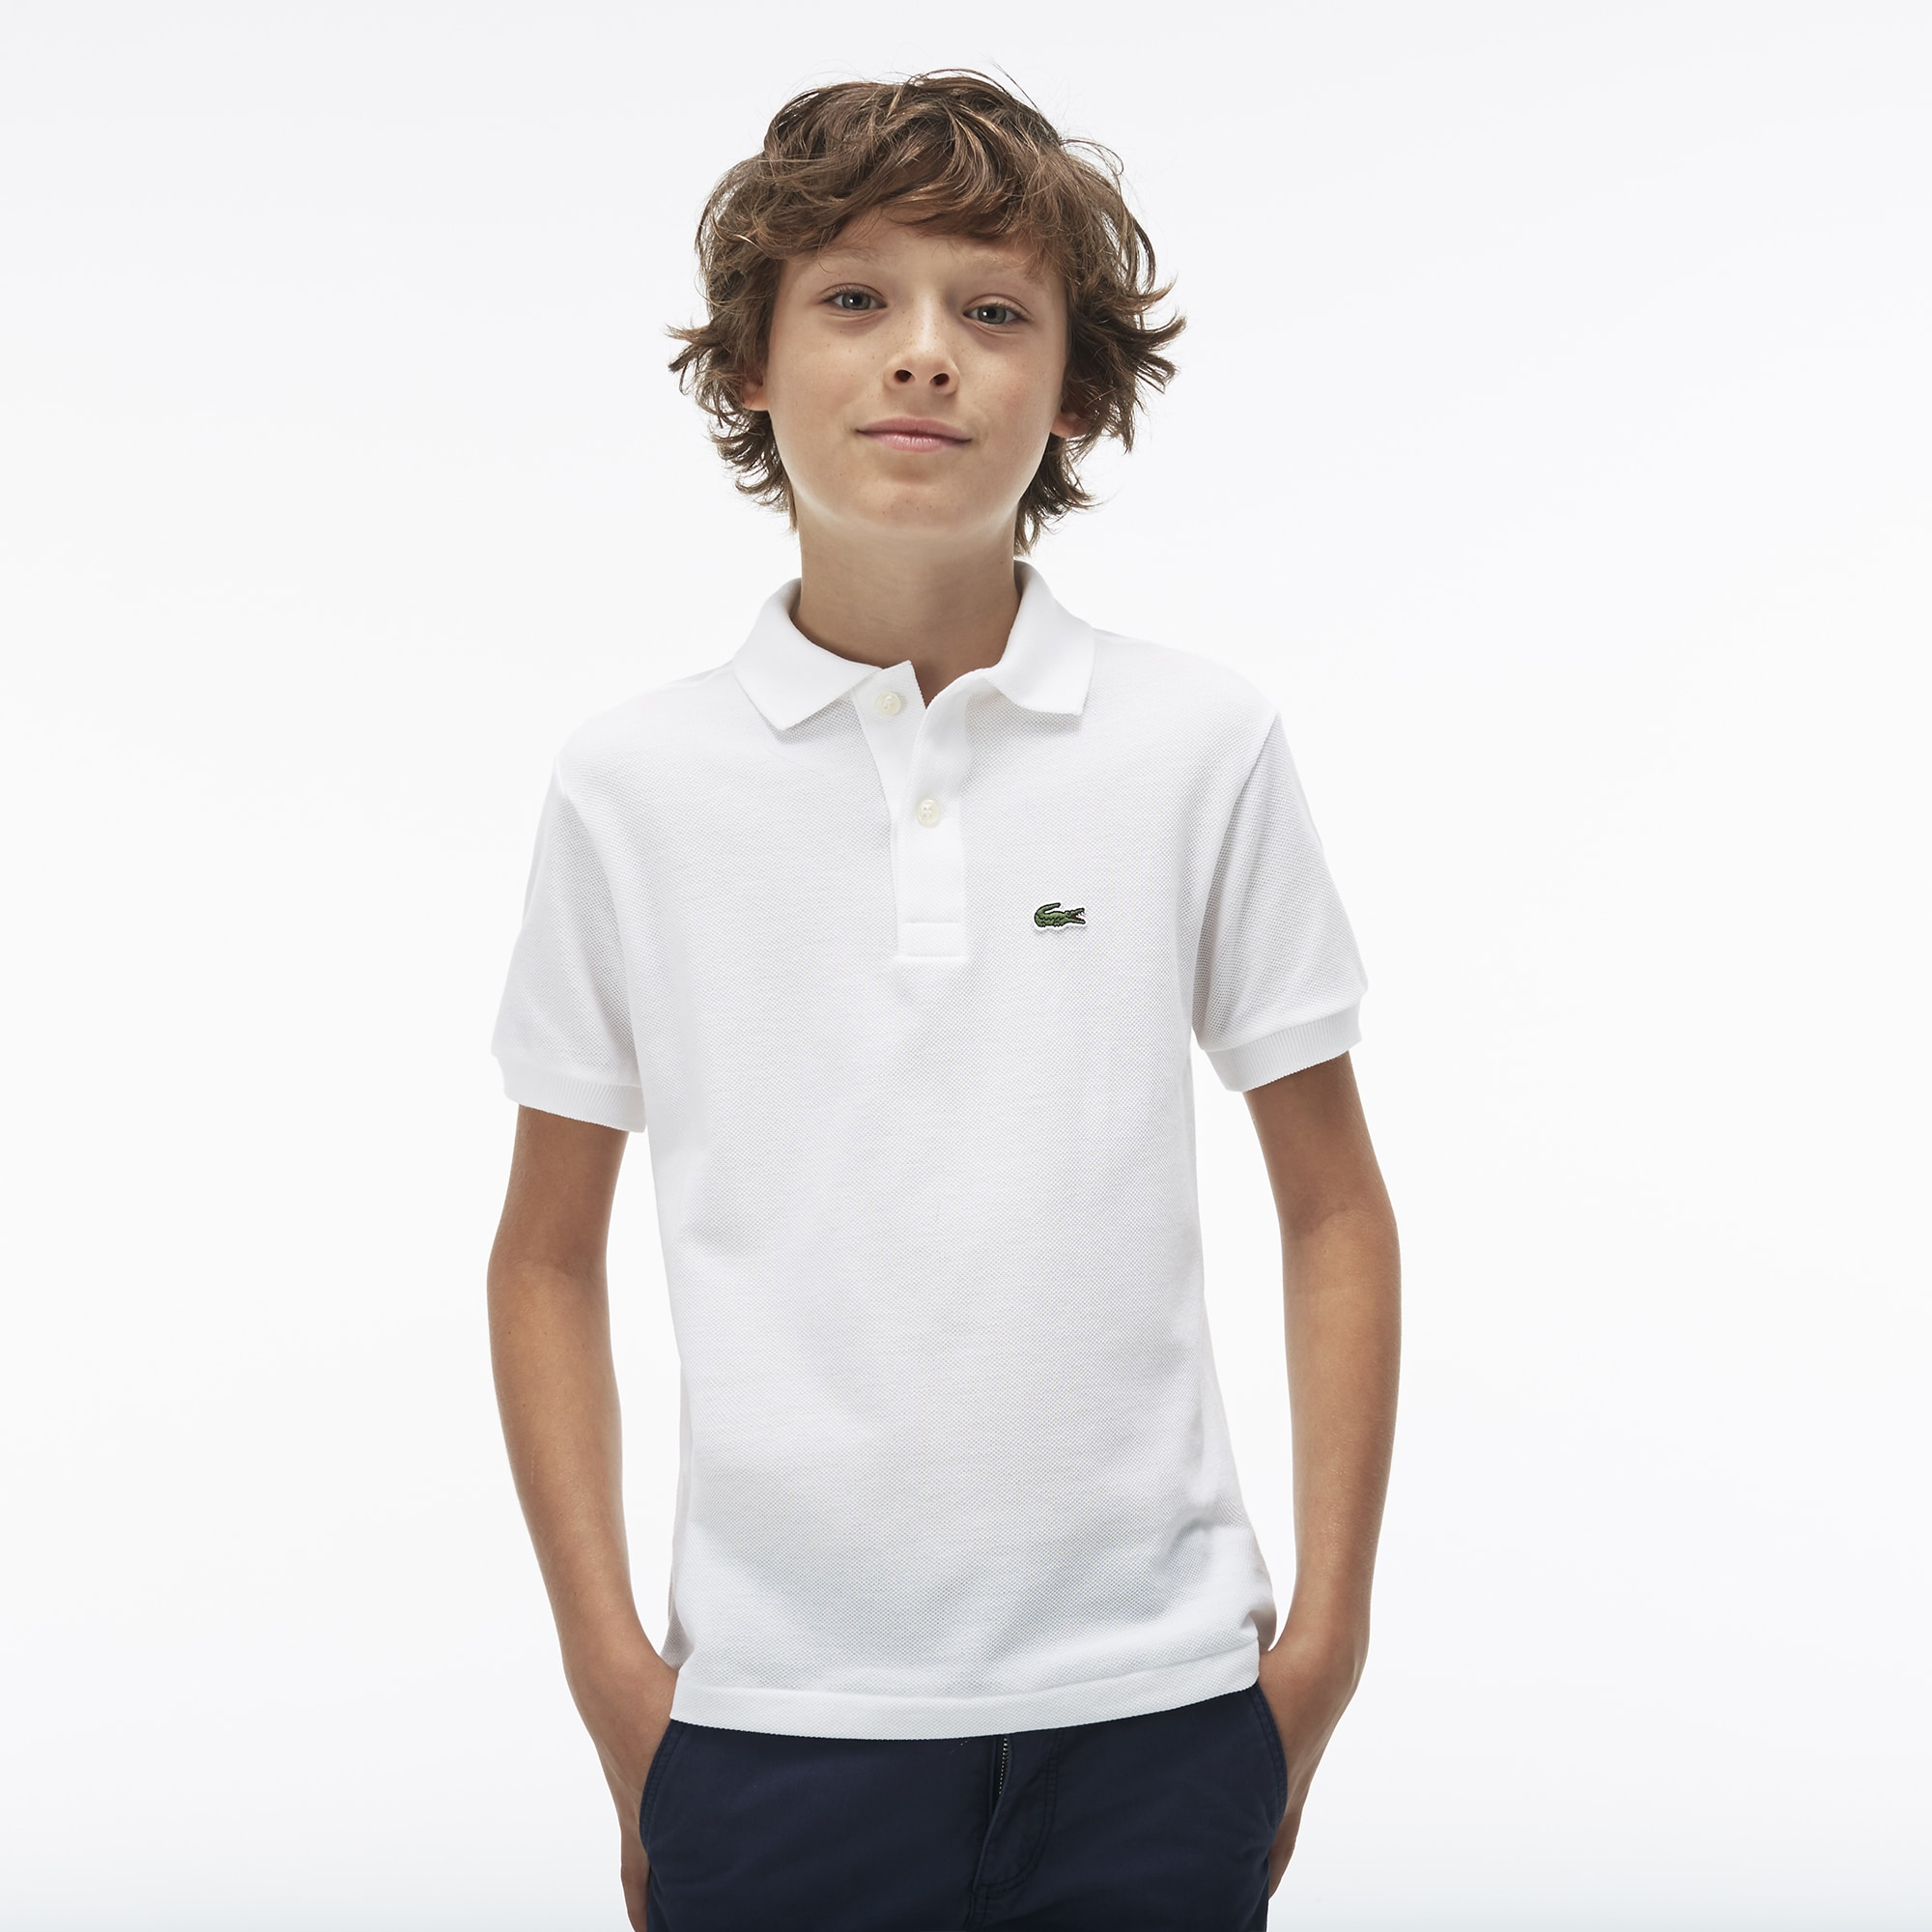 Individuelles Lacoste Kinder Polo